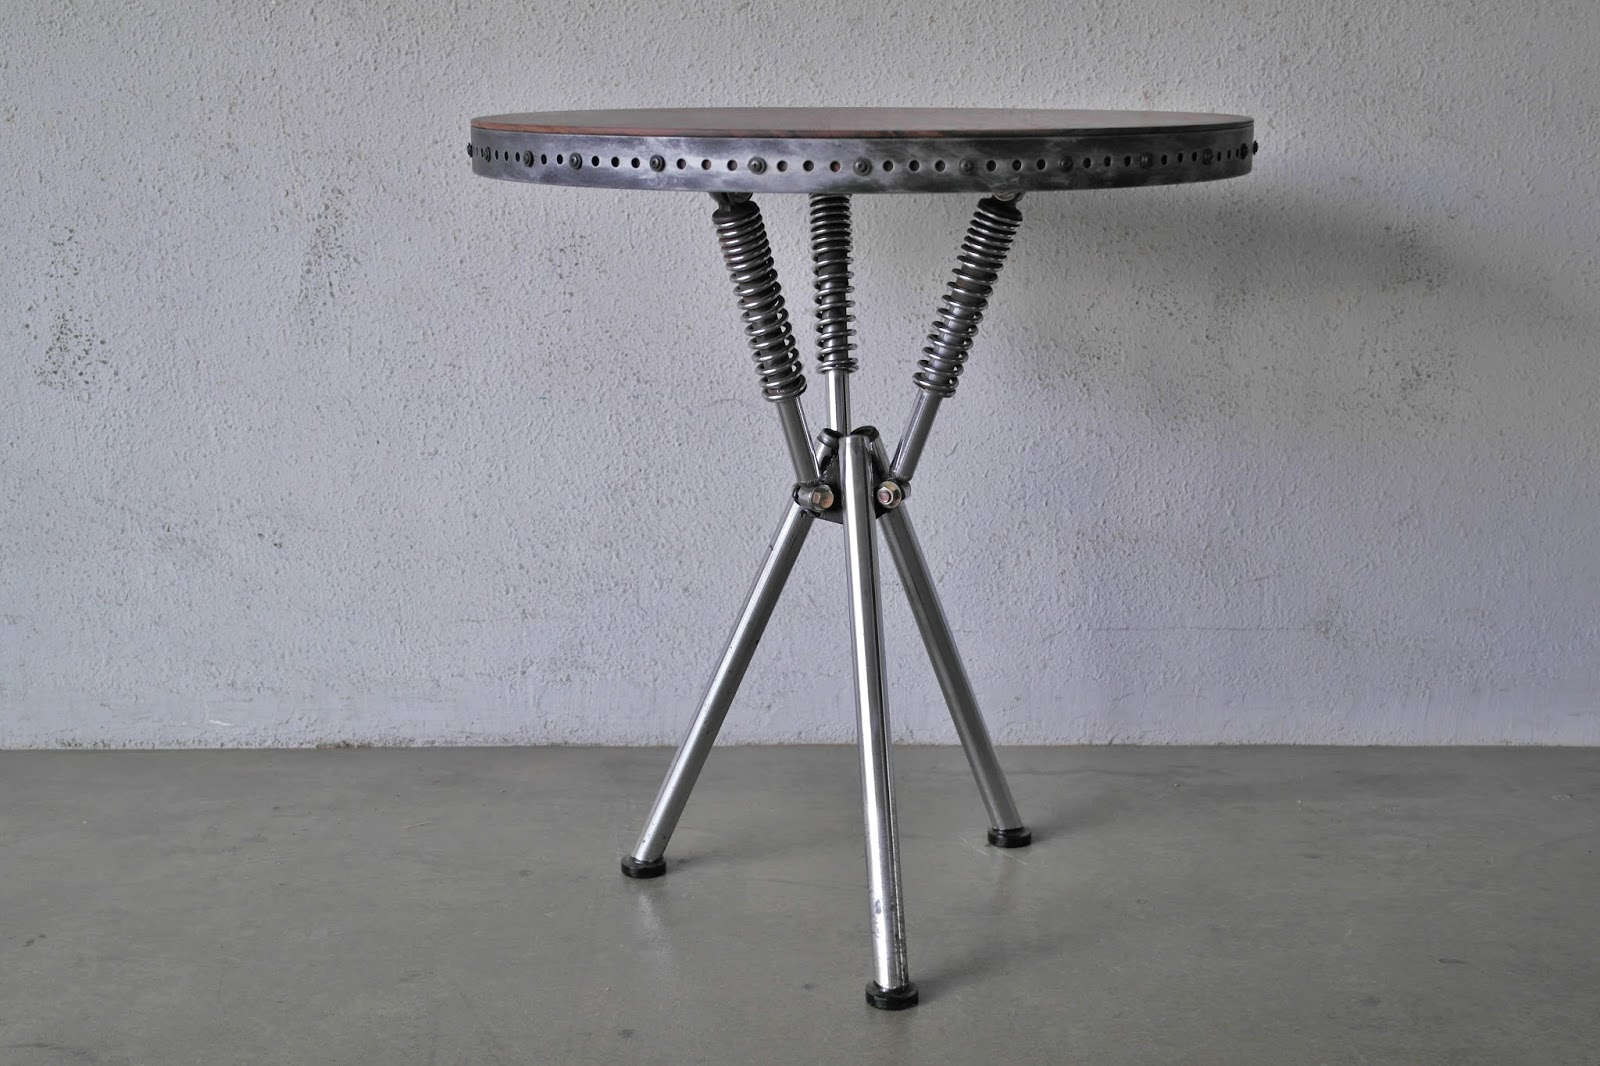 REPURPOSED ART COFFEE TABLES AND DINING TABLES FROM MOTORCYCLE - Restaurant table base parts